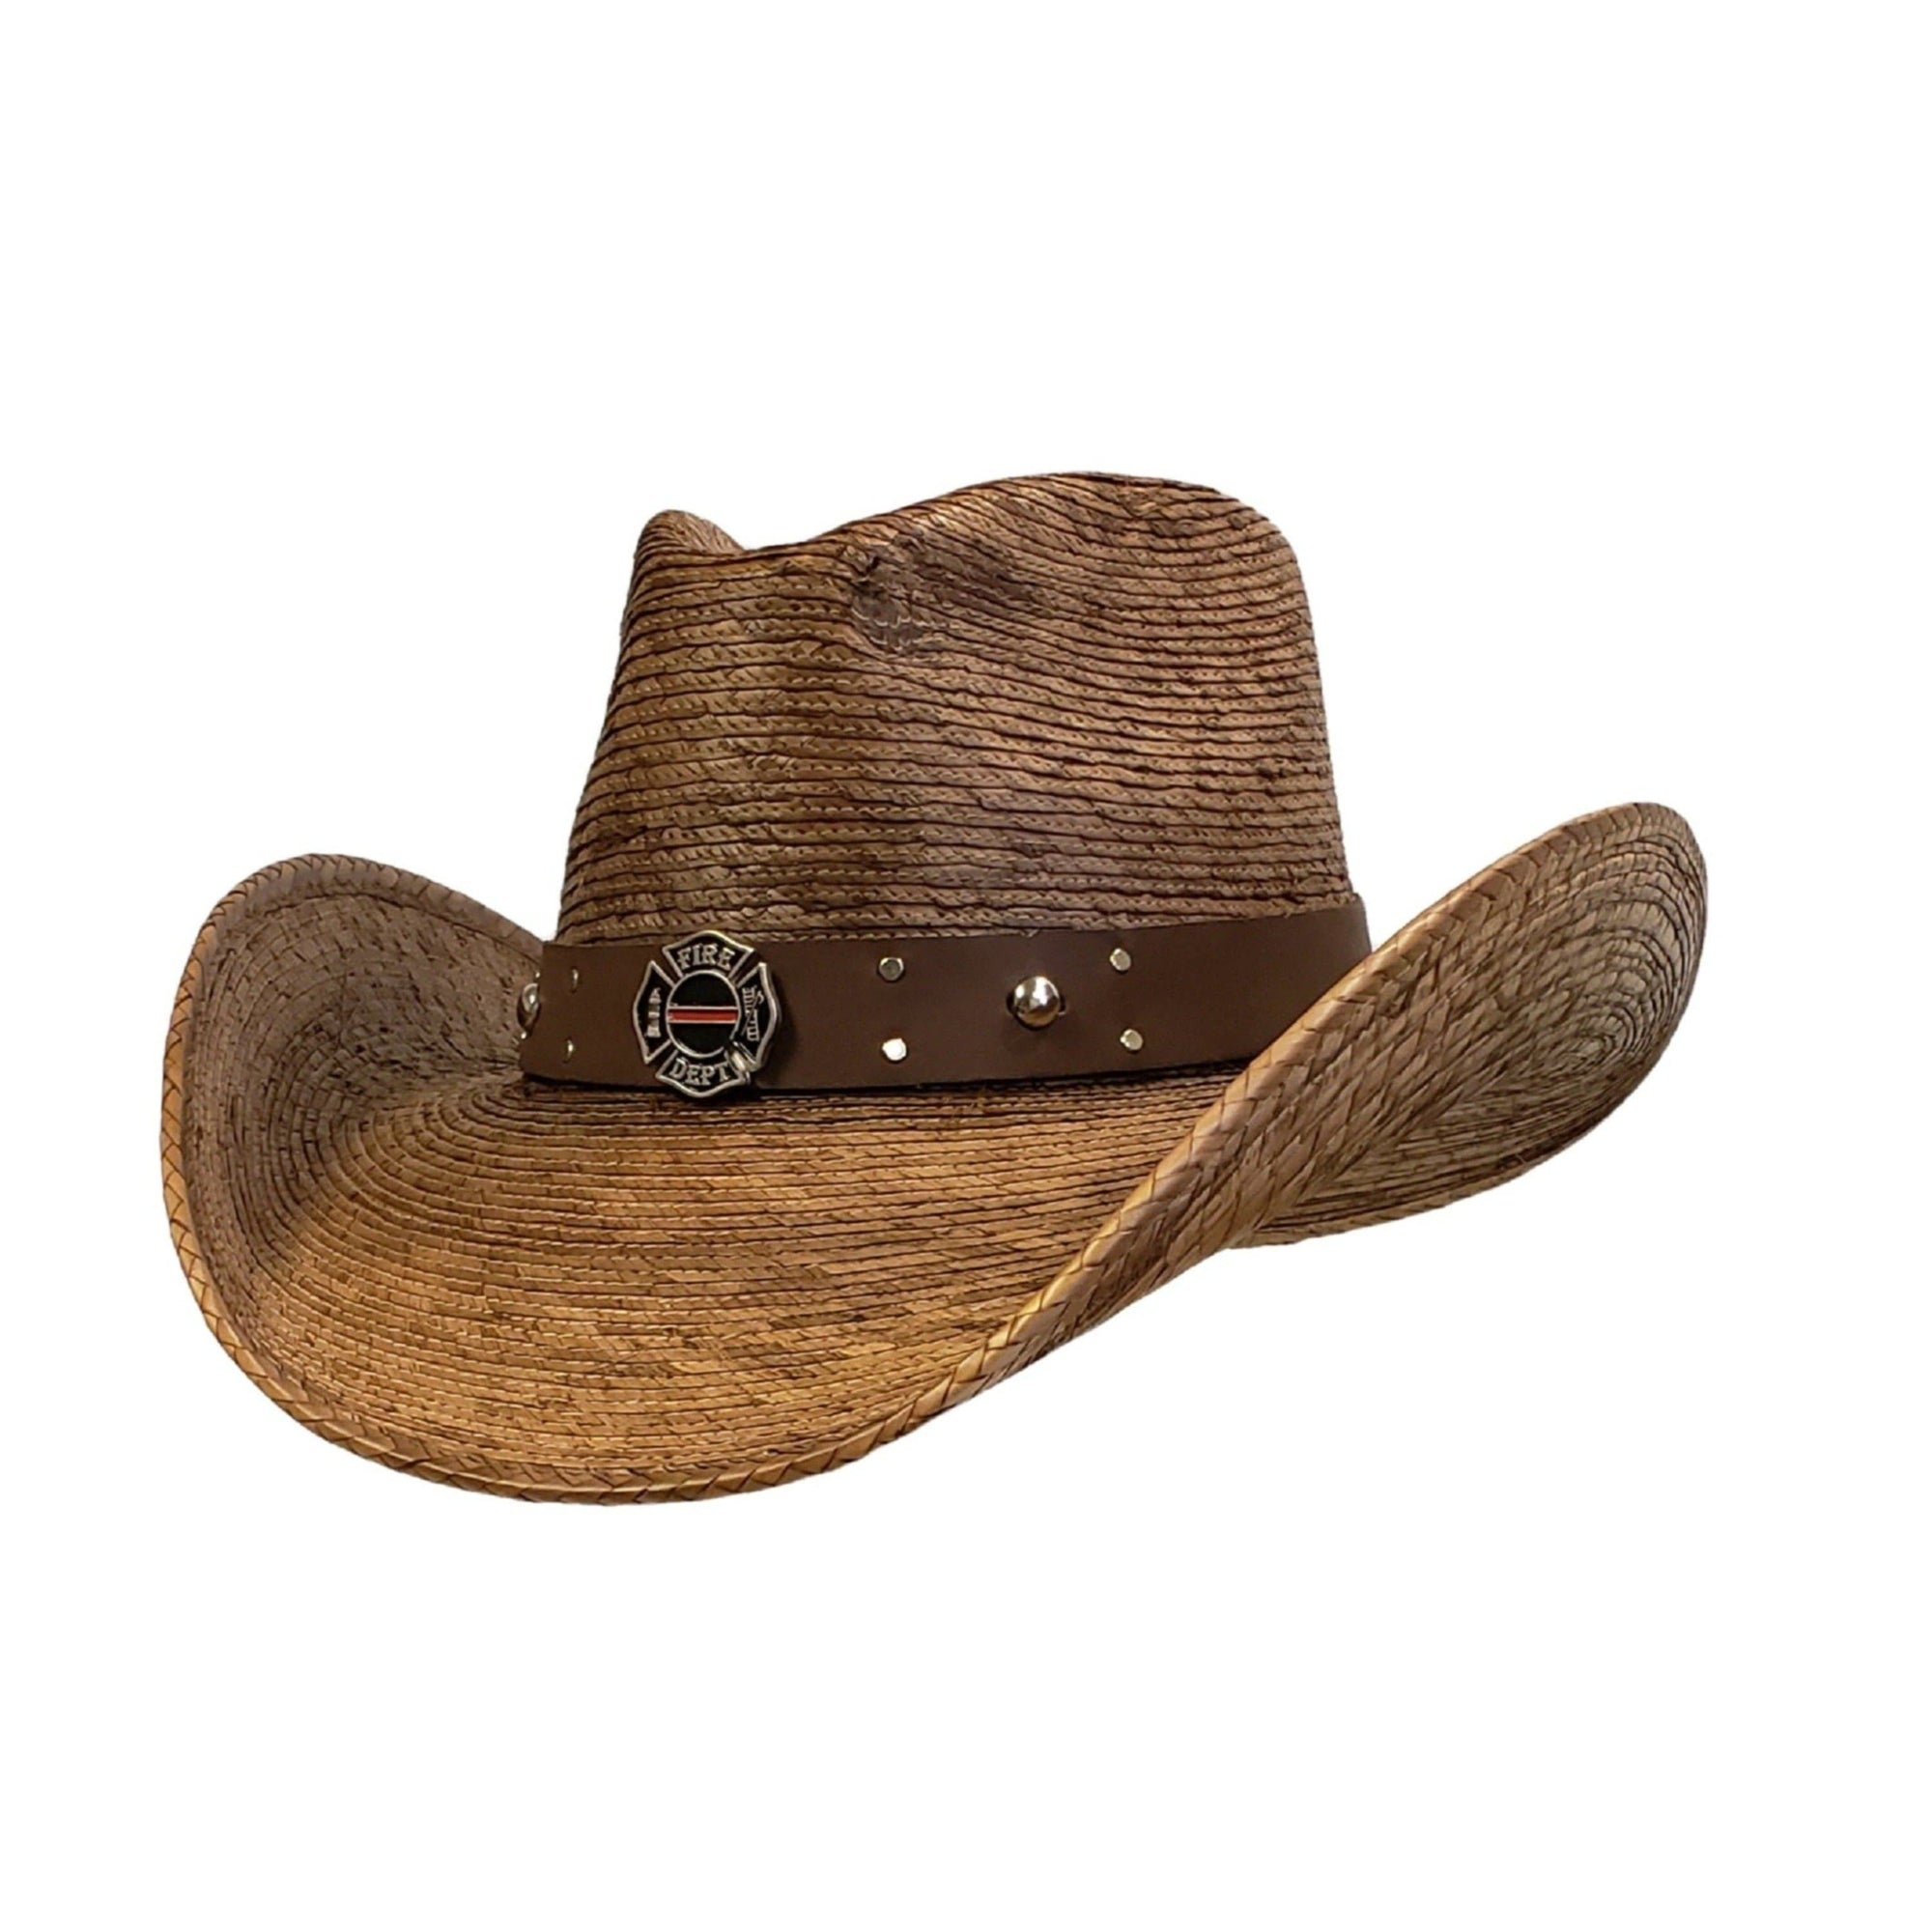 Brown palm cowboy hat with an firefighter hat band